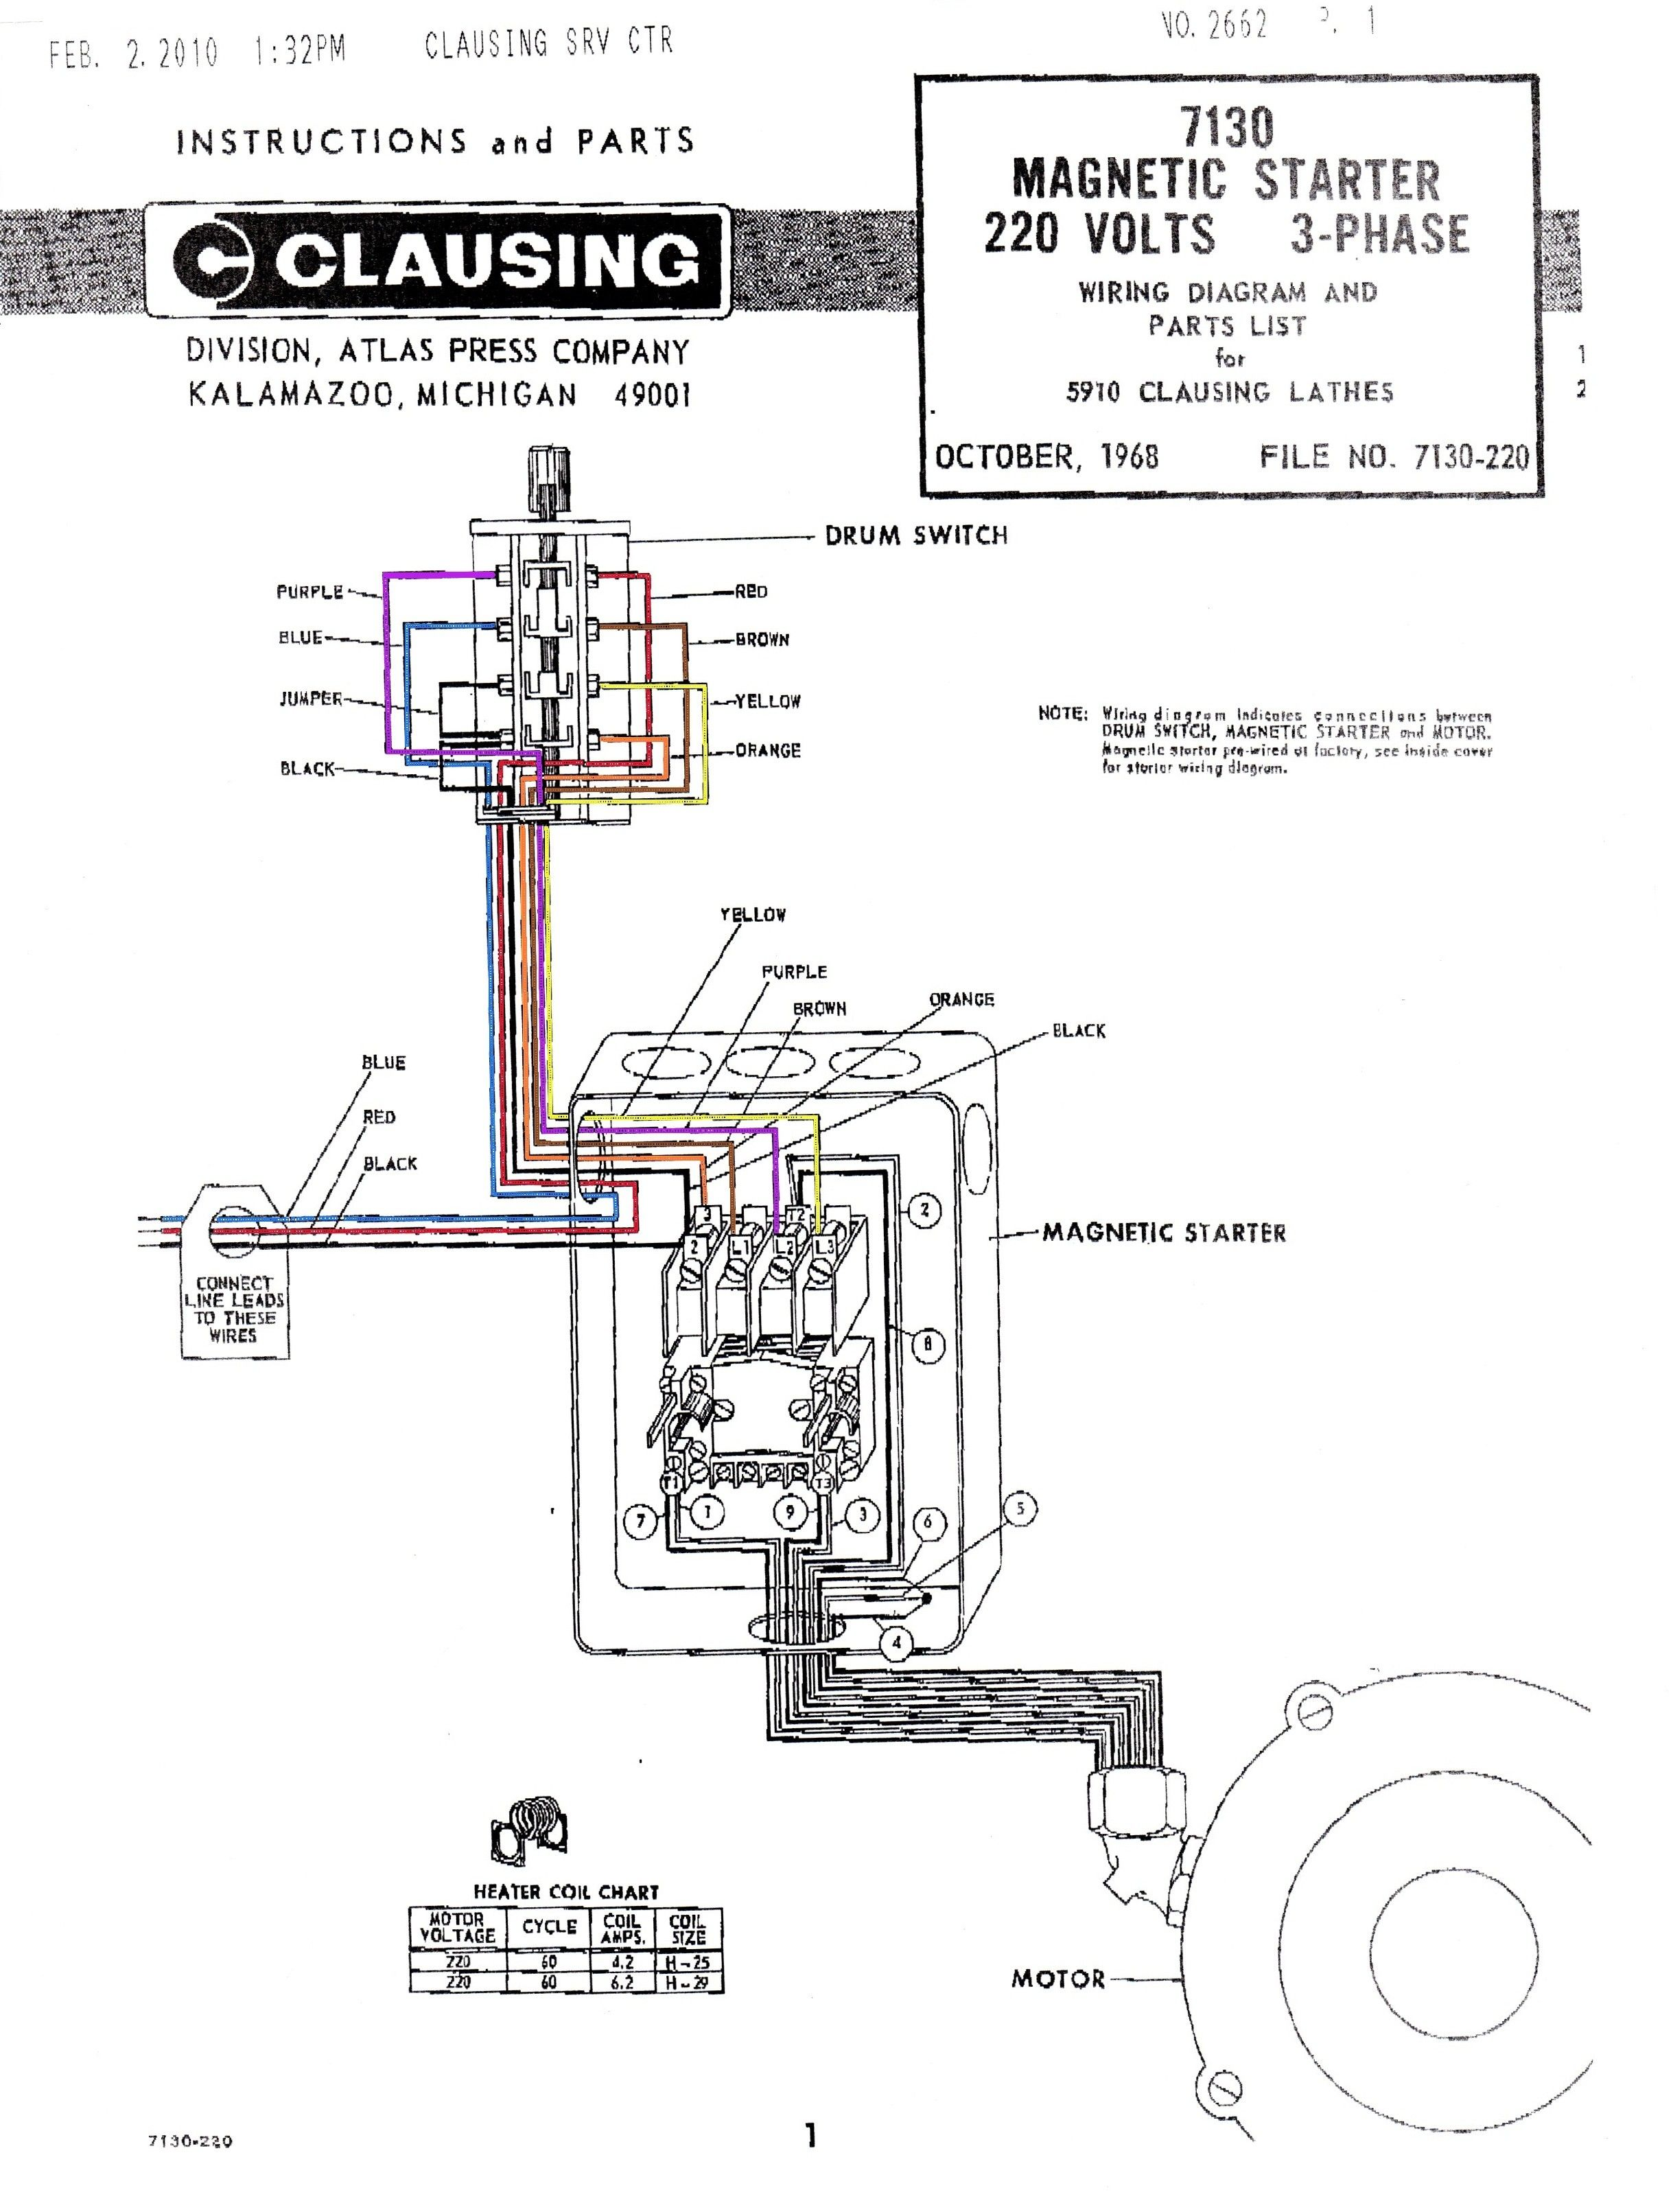 35 Lovely Square D Manual Motor Starter Wiring Diagram | Diagram, Wire,  Circuit diagram